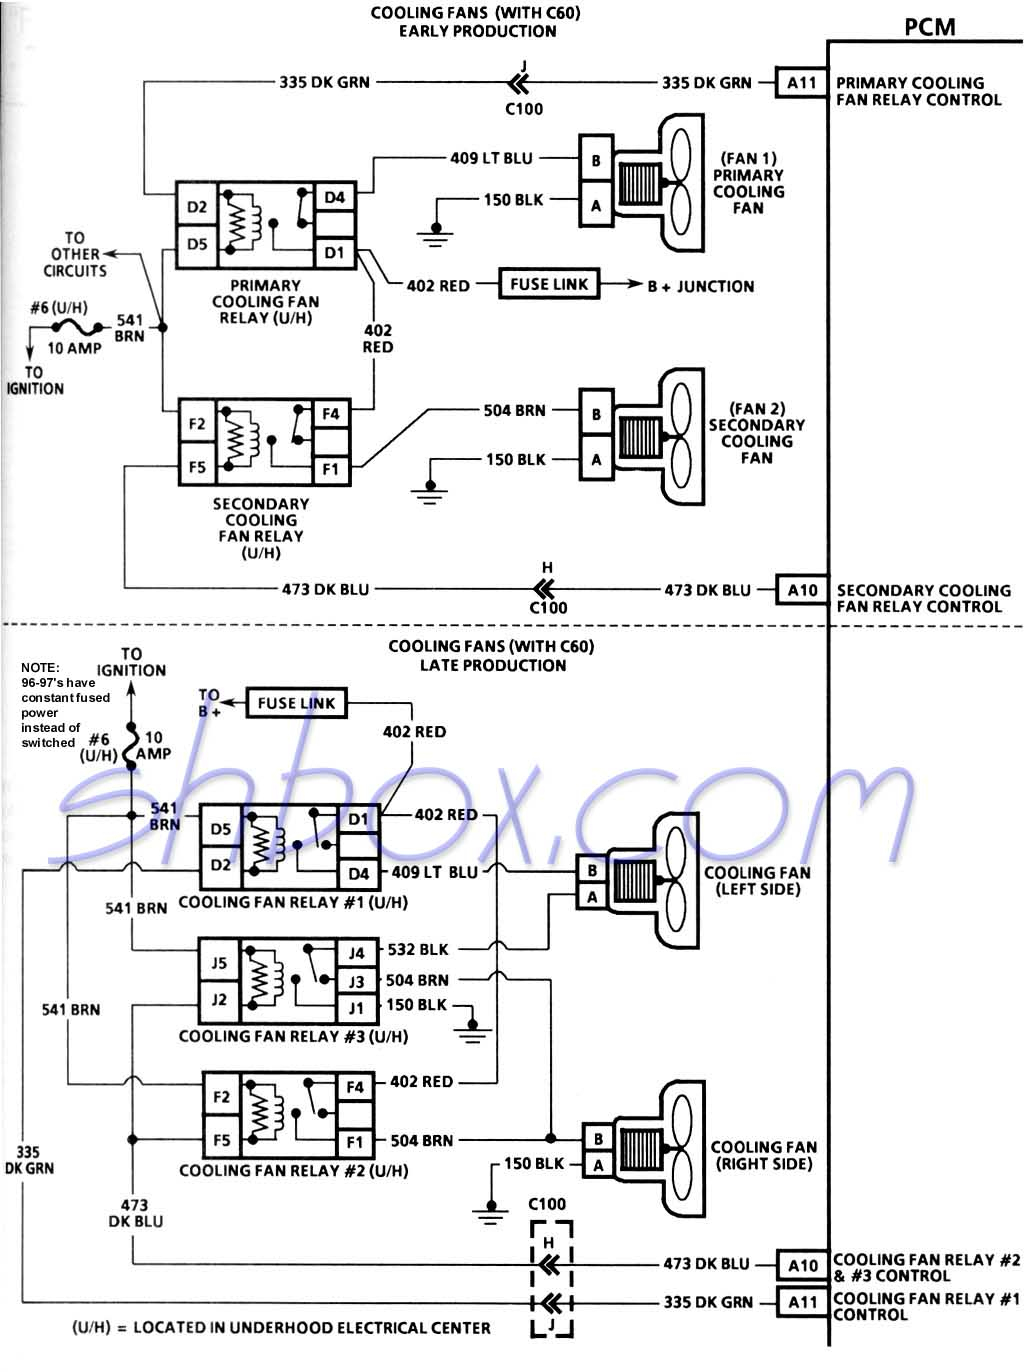 4Th Gen Lt1 F-Body Tech Aids - Fan Wiring Diagram